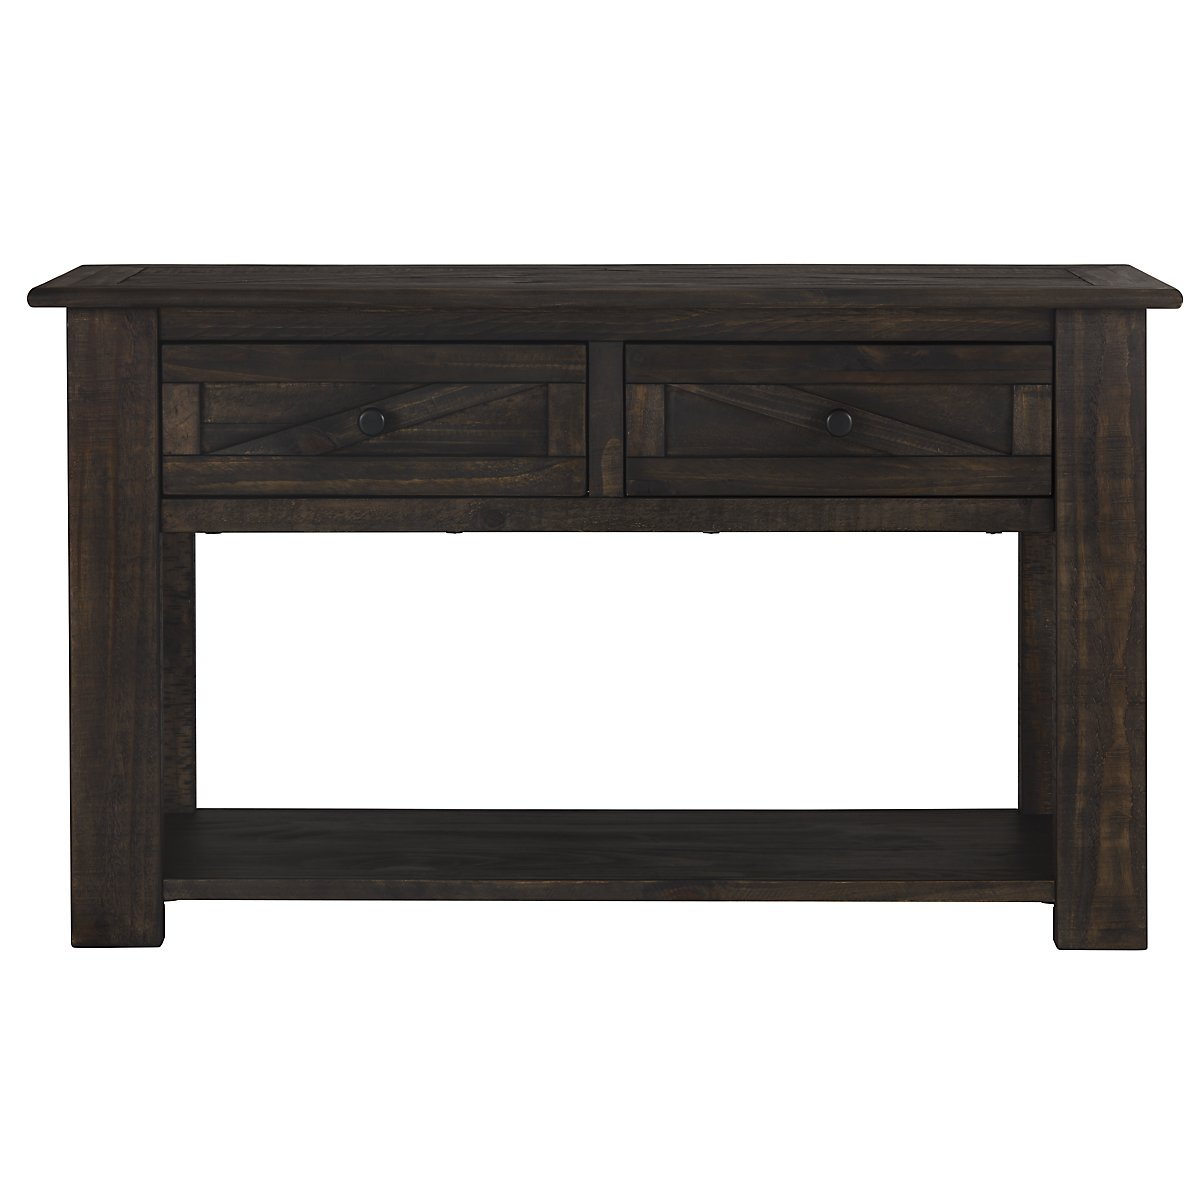 City furniture garrett dark tone storage sofa table Console tables with storage